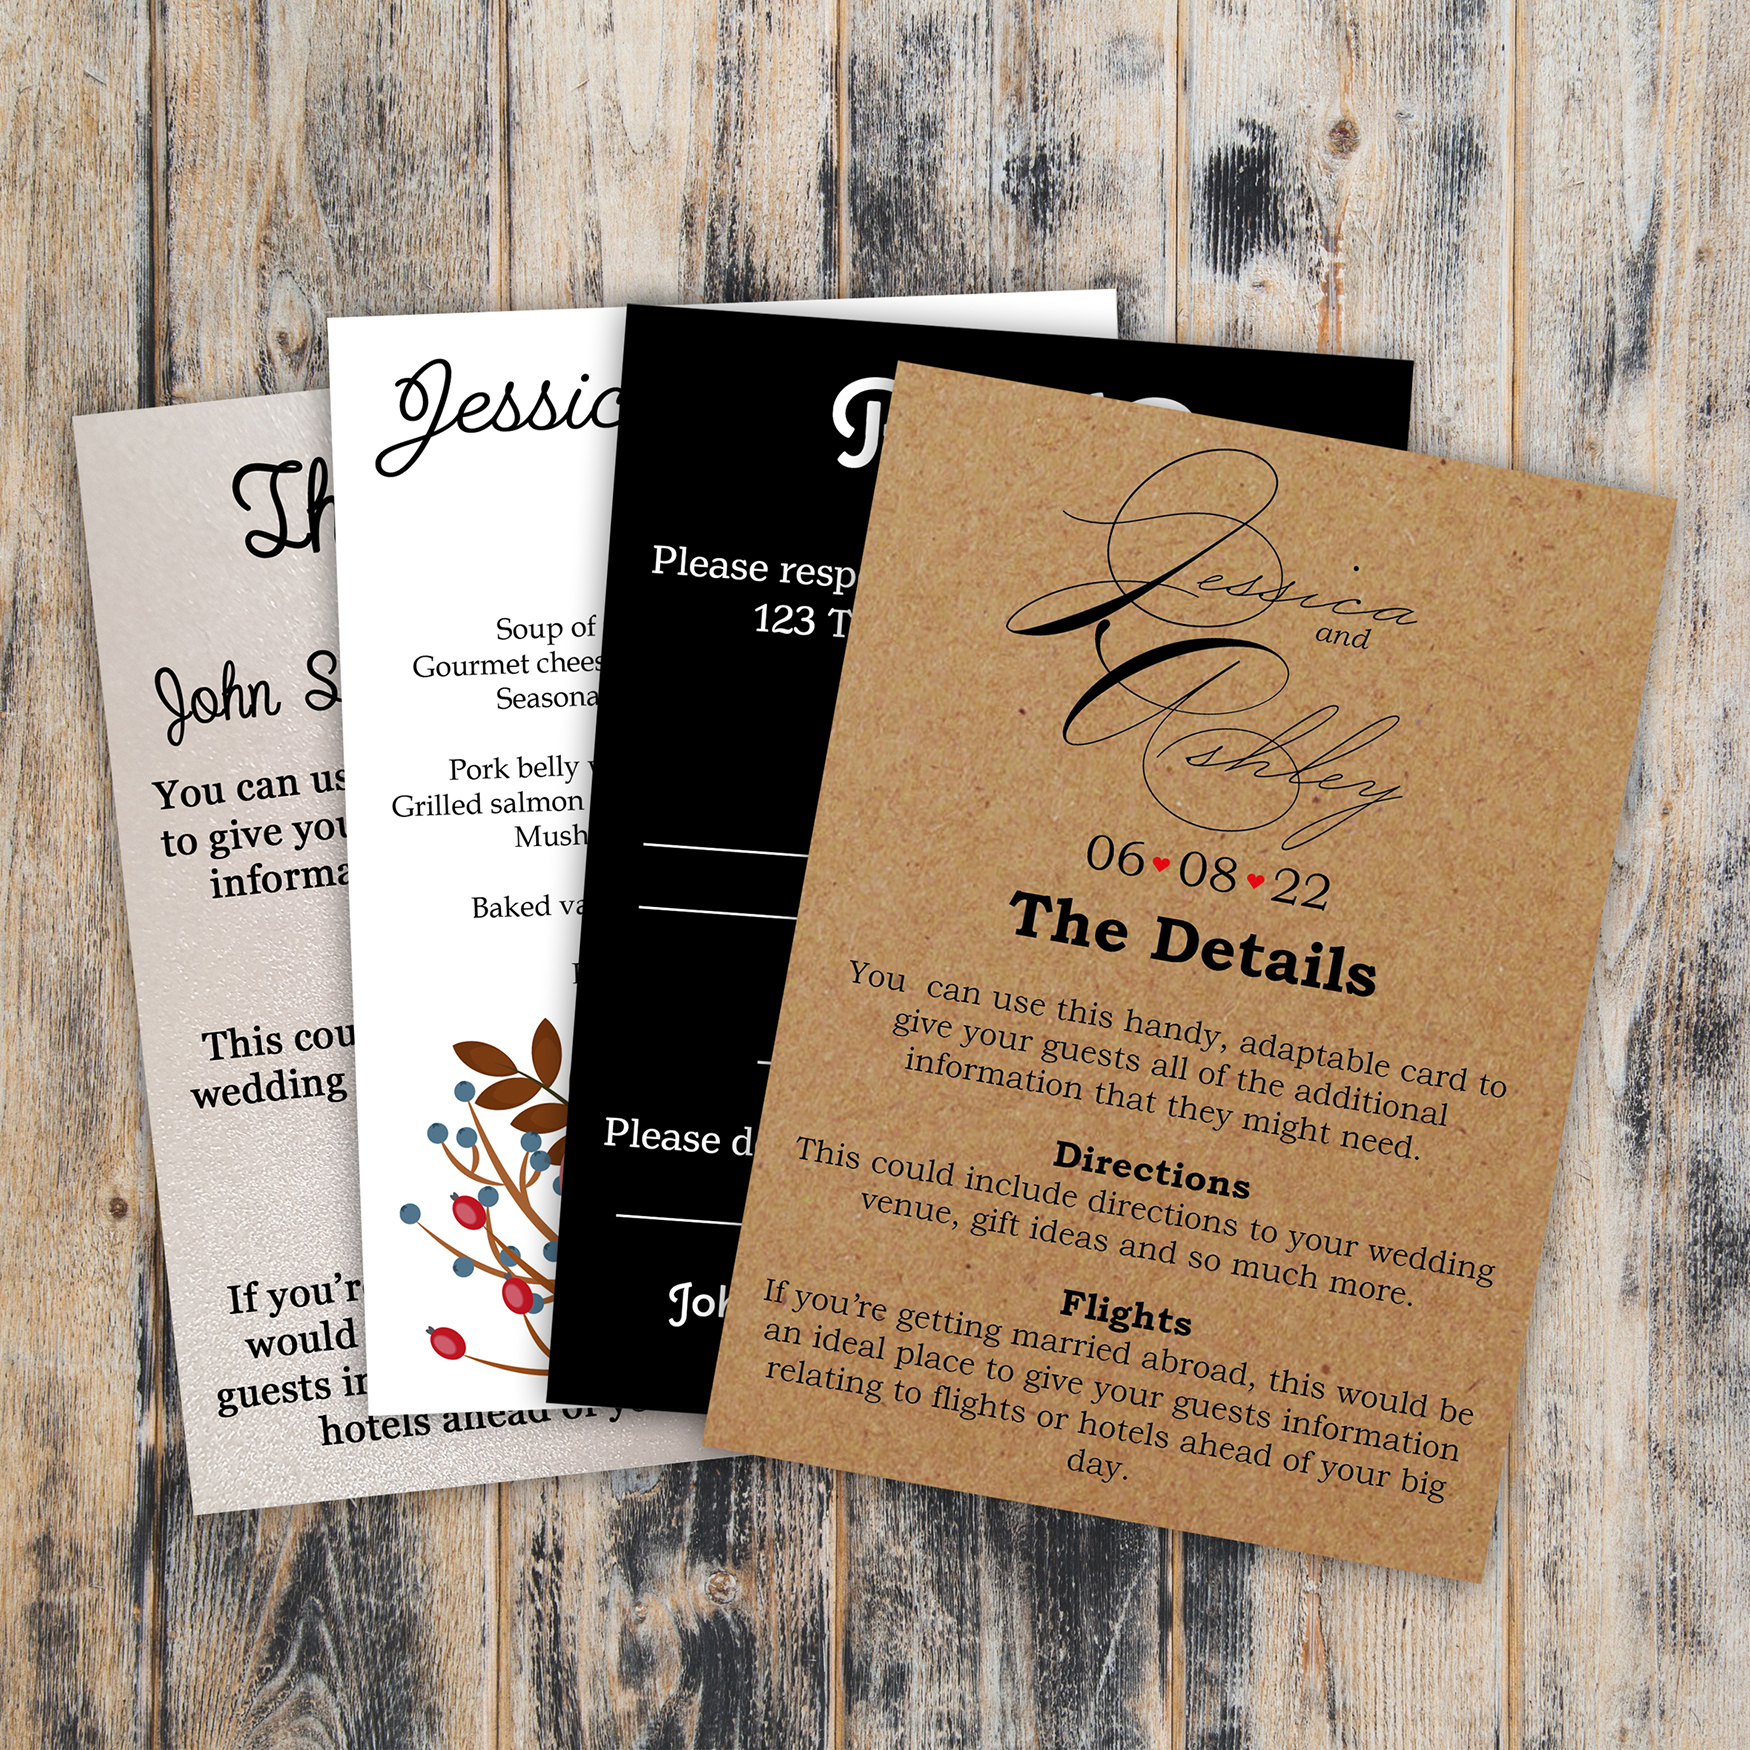 What Inserts Should I Include with my Wedding Invites?